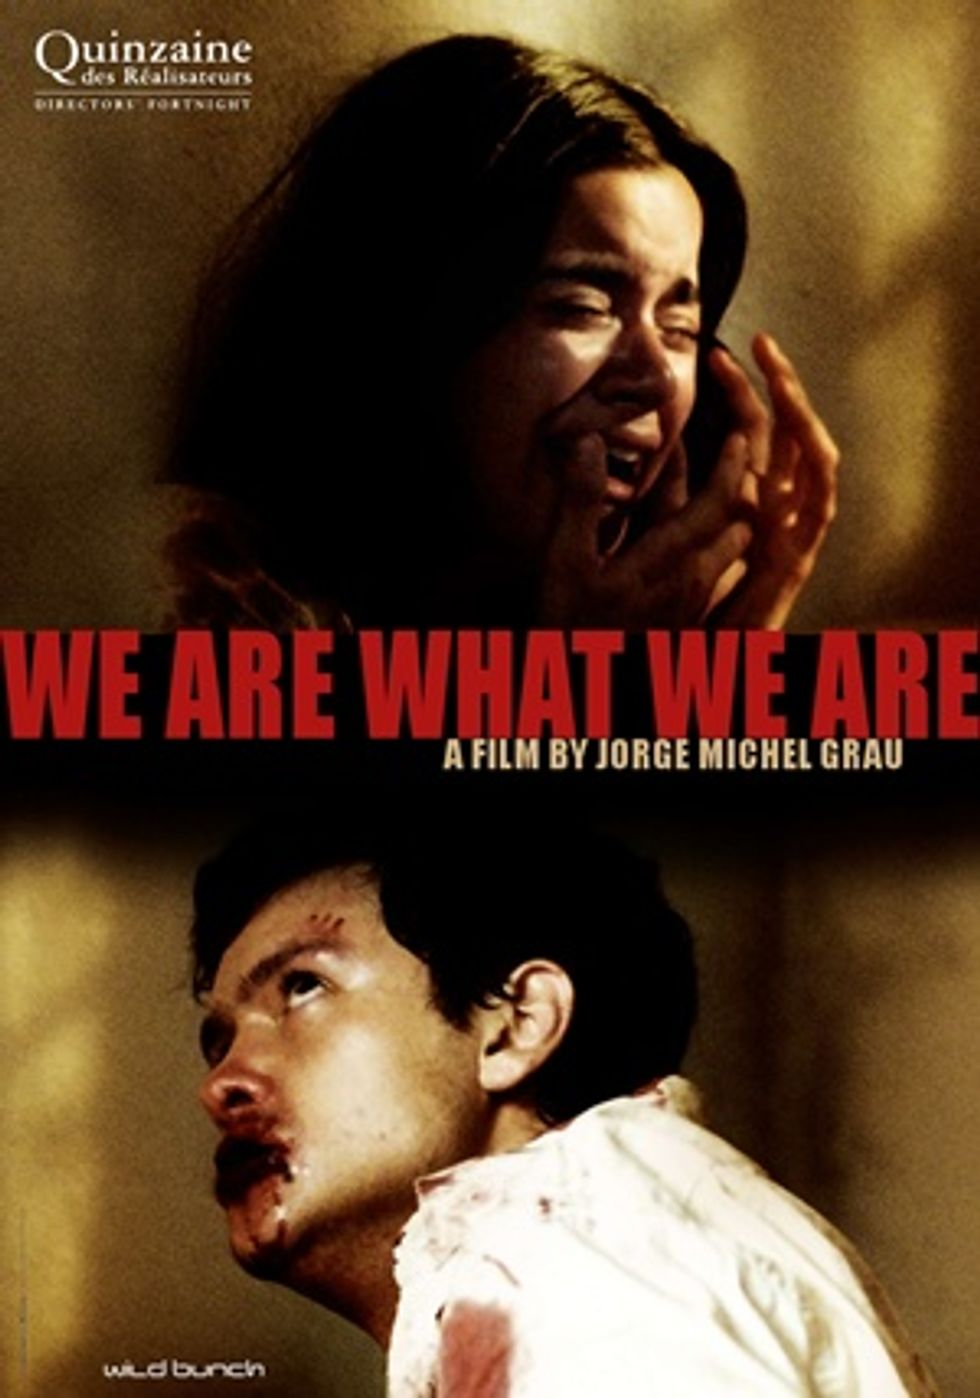 A Family of Cannibals: We Are What We Are At IFC Theaters